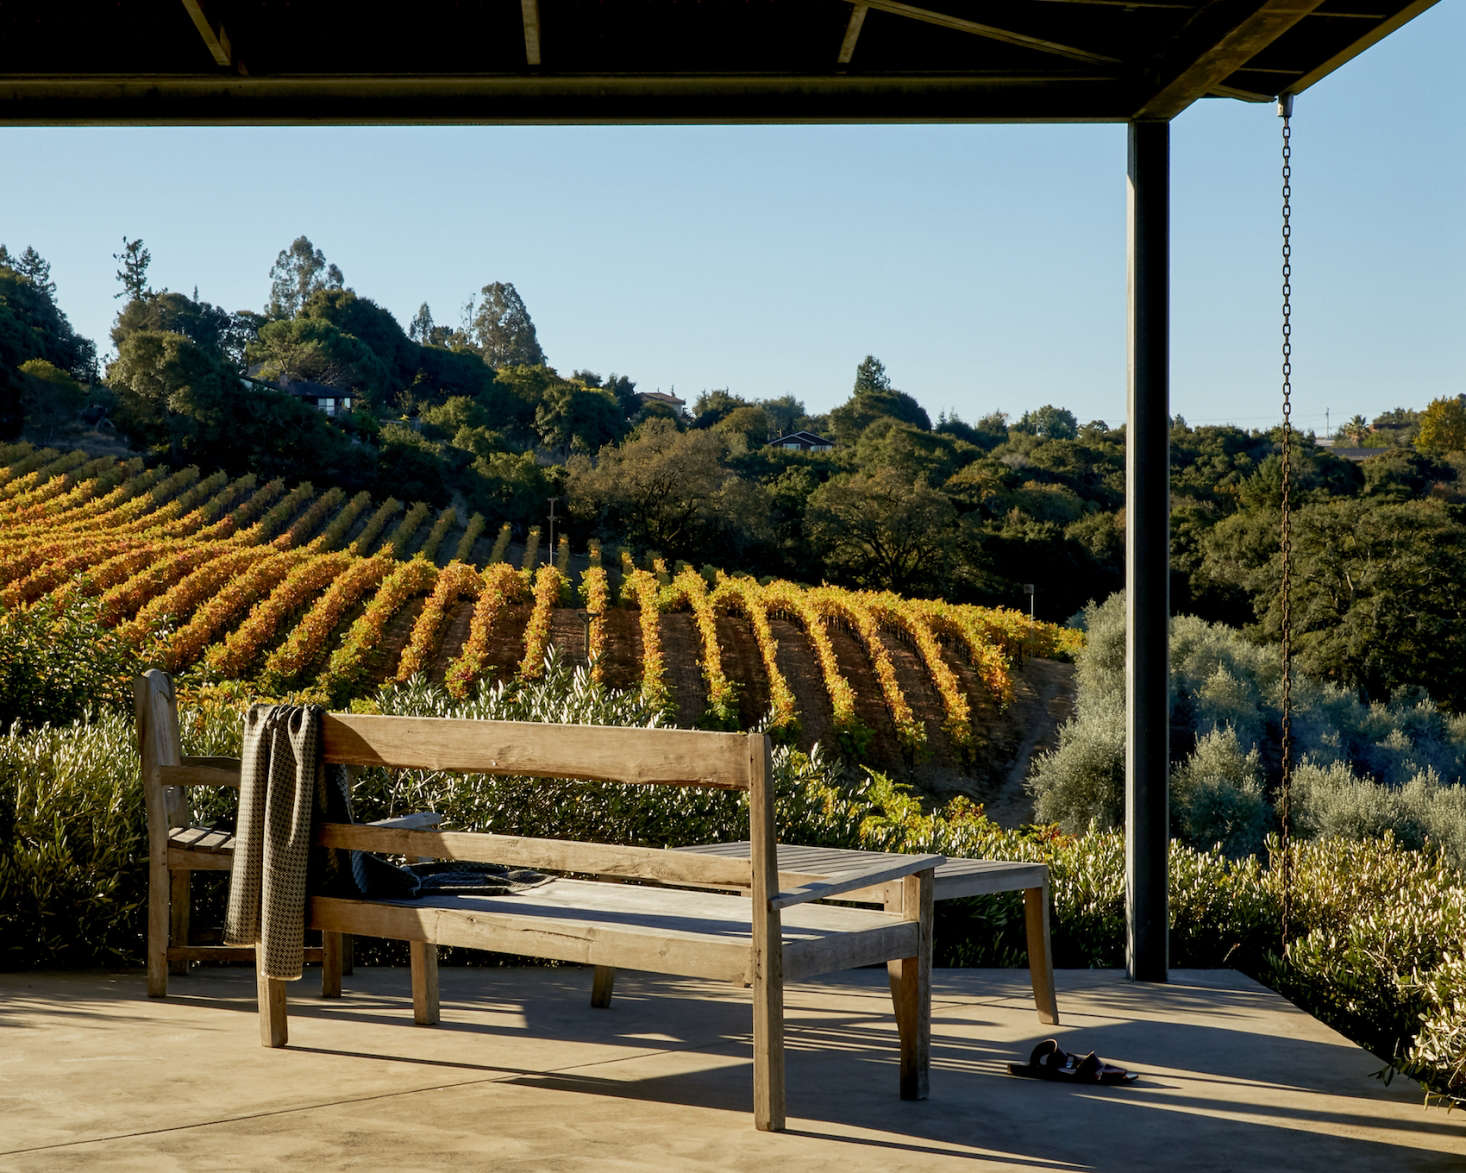 The Winemaker\'s Life: A Garden Idyll in Northern California - Gardenista